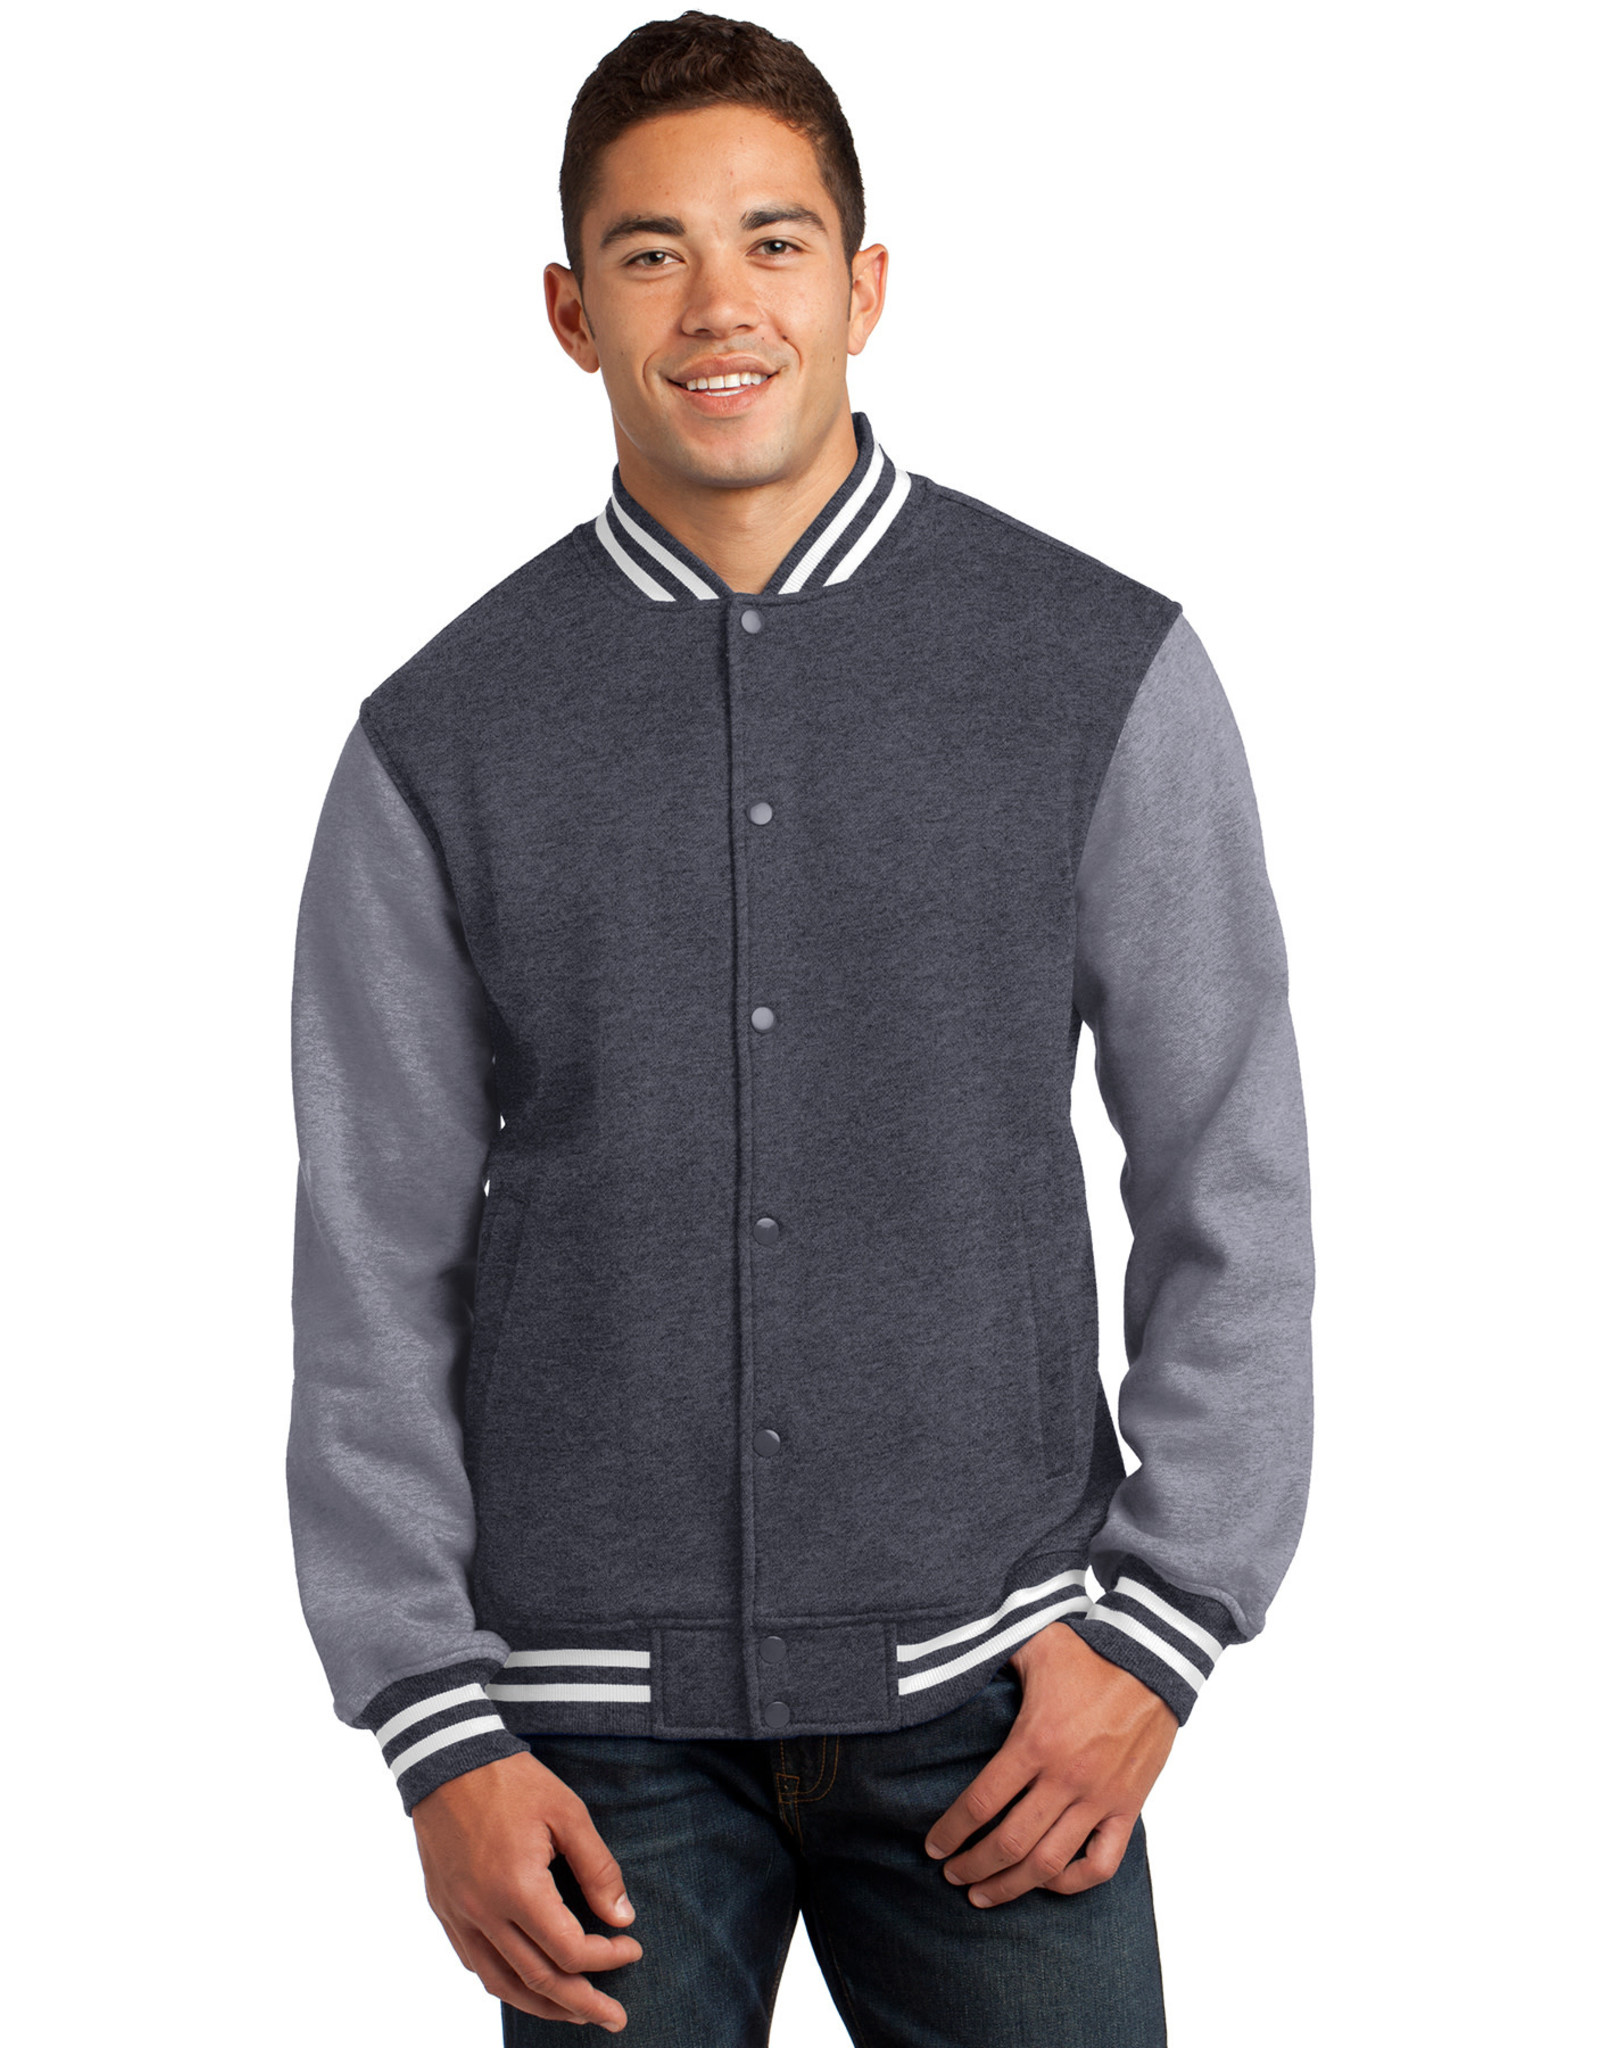 NON-UNIFORM JD Theatre Letterman Jacket, Sport Tek Fleece